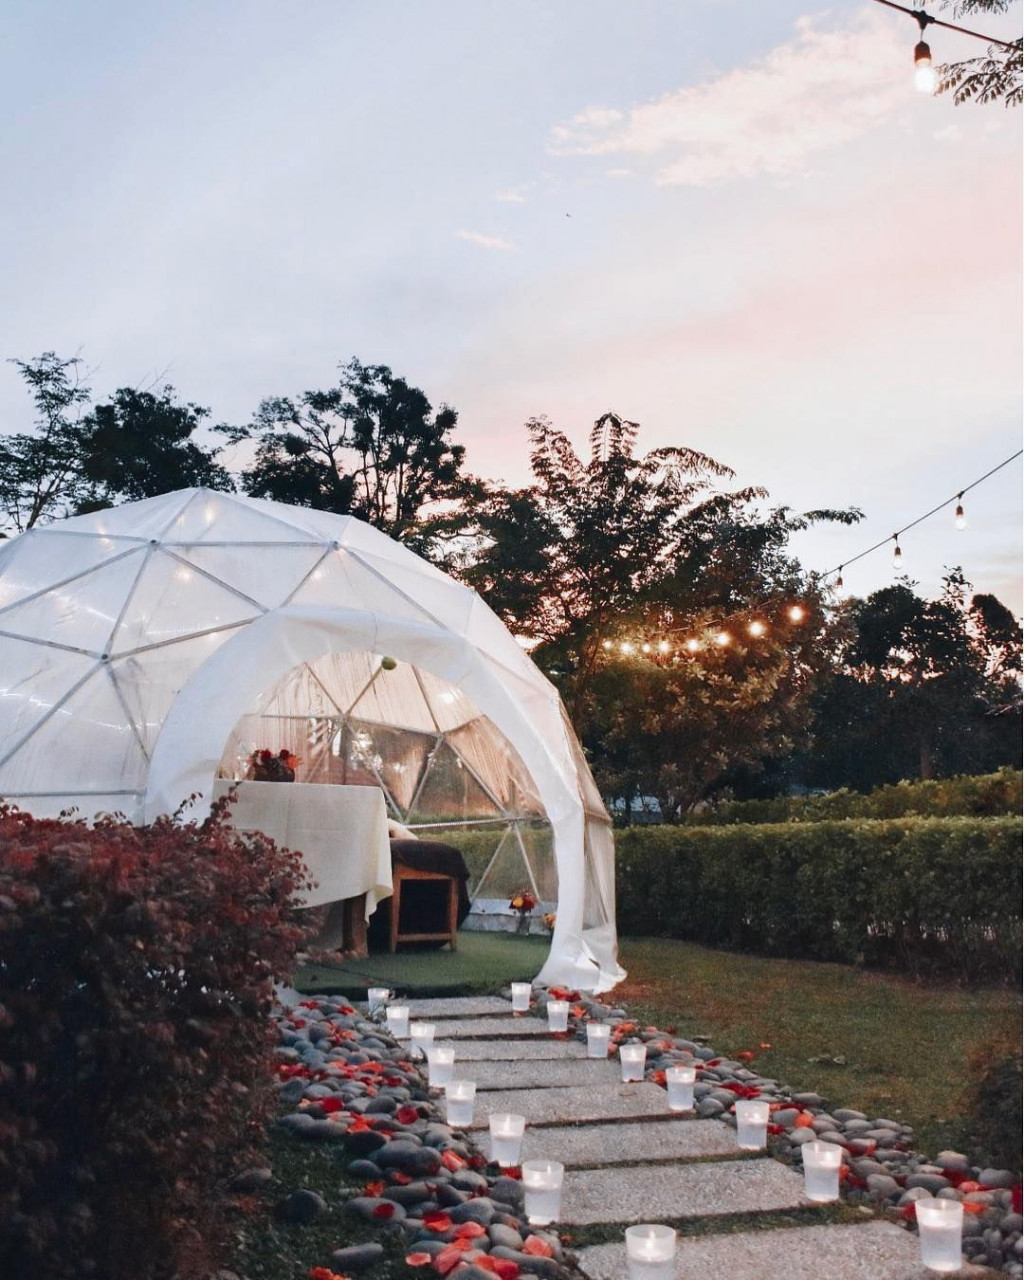 summerhouse garden dome valentine's day restaurant